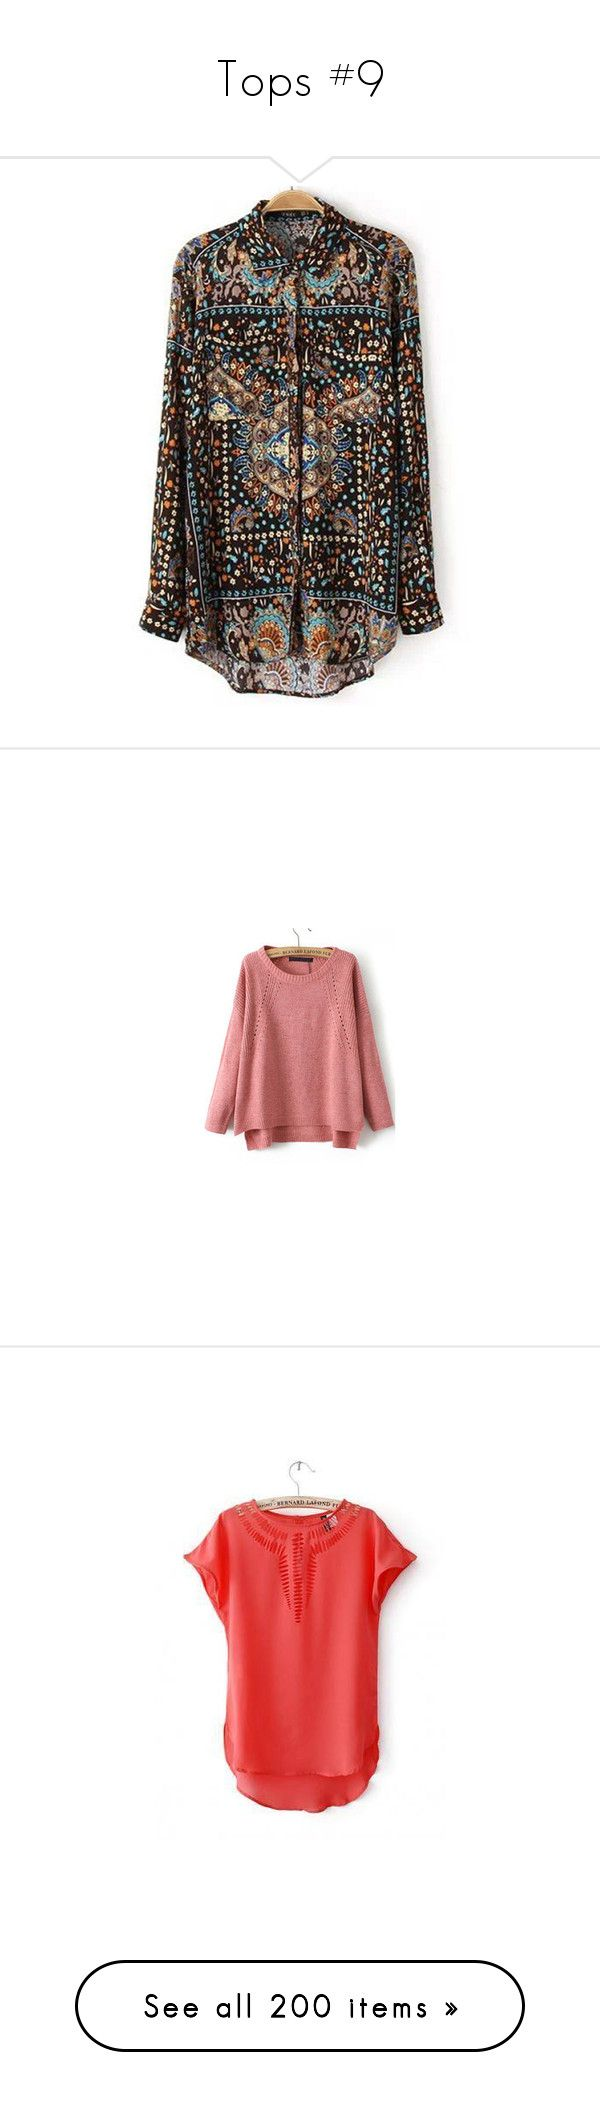 """""""Tops #9"""" by vanessa-m-108 ❤ liked on Polyvore featuring tops, blouses, multicolor, brown top, multi color blouse, flower print blouse, collar blouse, loose blouse, sweaters and red top"""